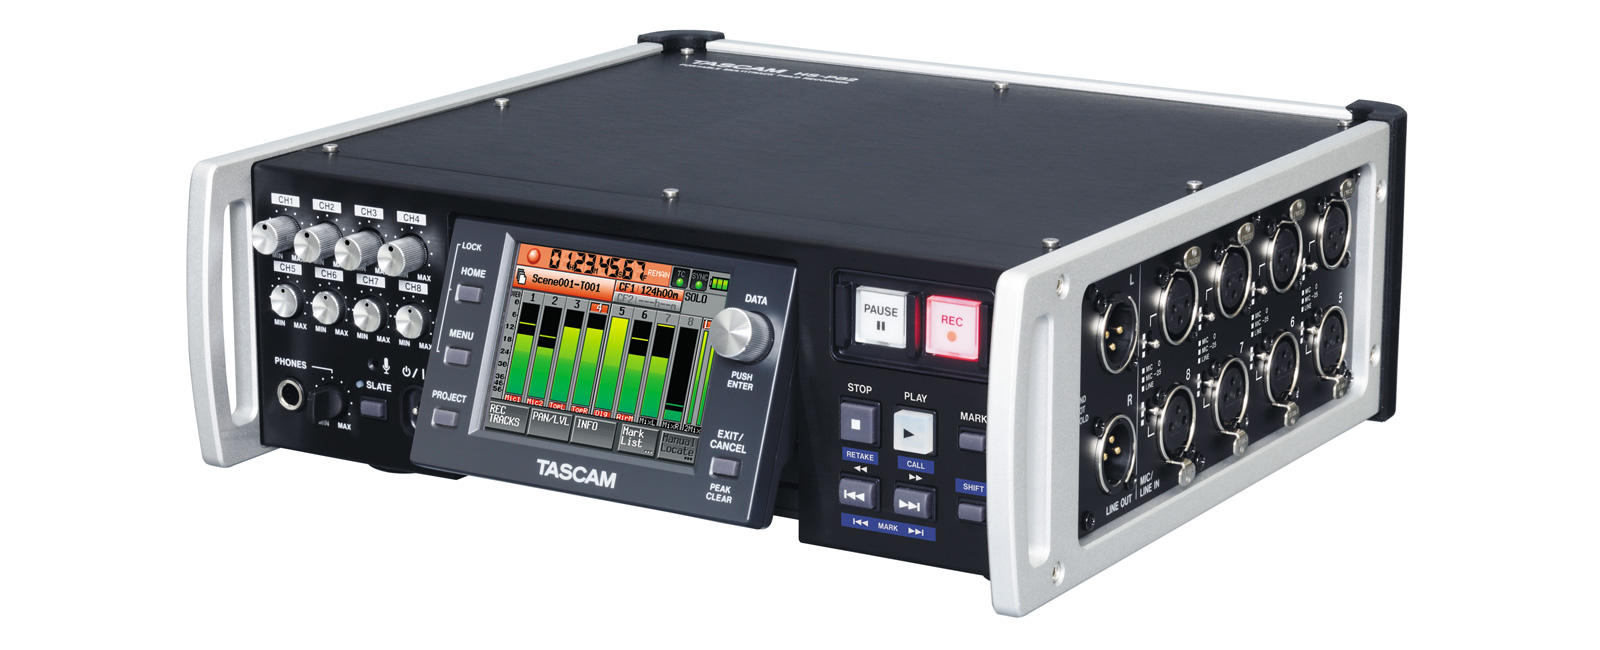 Hs P82 Features Tascam The Project Is A Simple 12bit 8channel Analog To Digital Converter 8 Track Pro Field Recorder